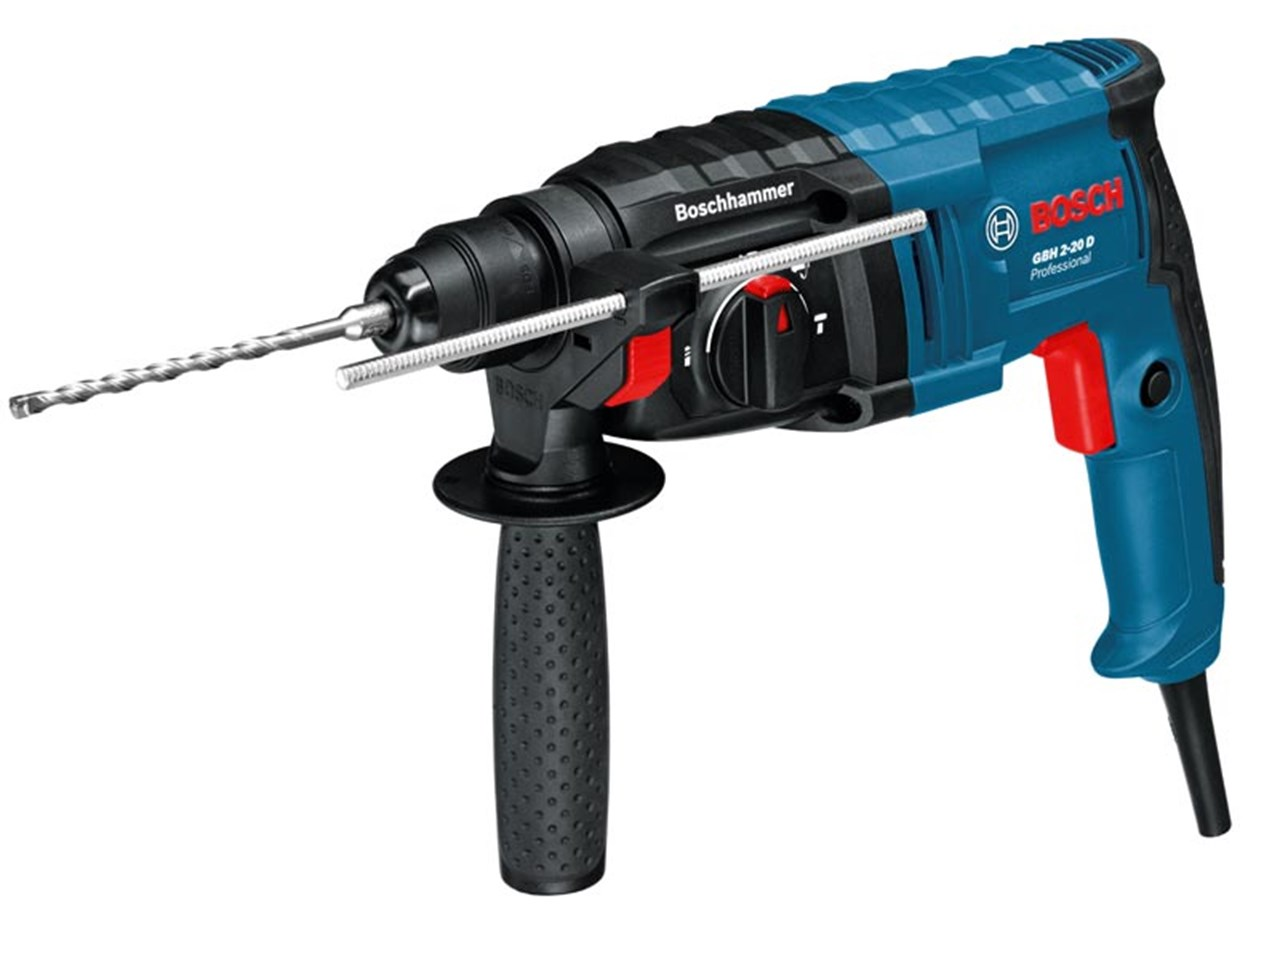 bosch gbh2 20d 110v sds rotary hammer drill 3 mode 650w. Black Bedroom Furniture Sets. Home Design Ideas